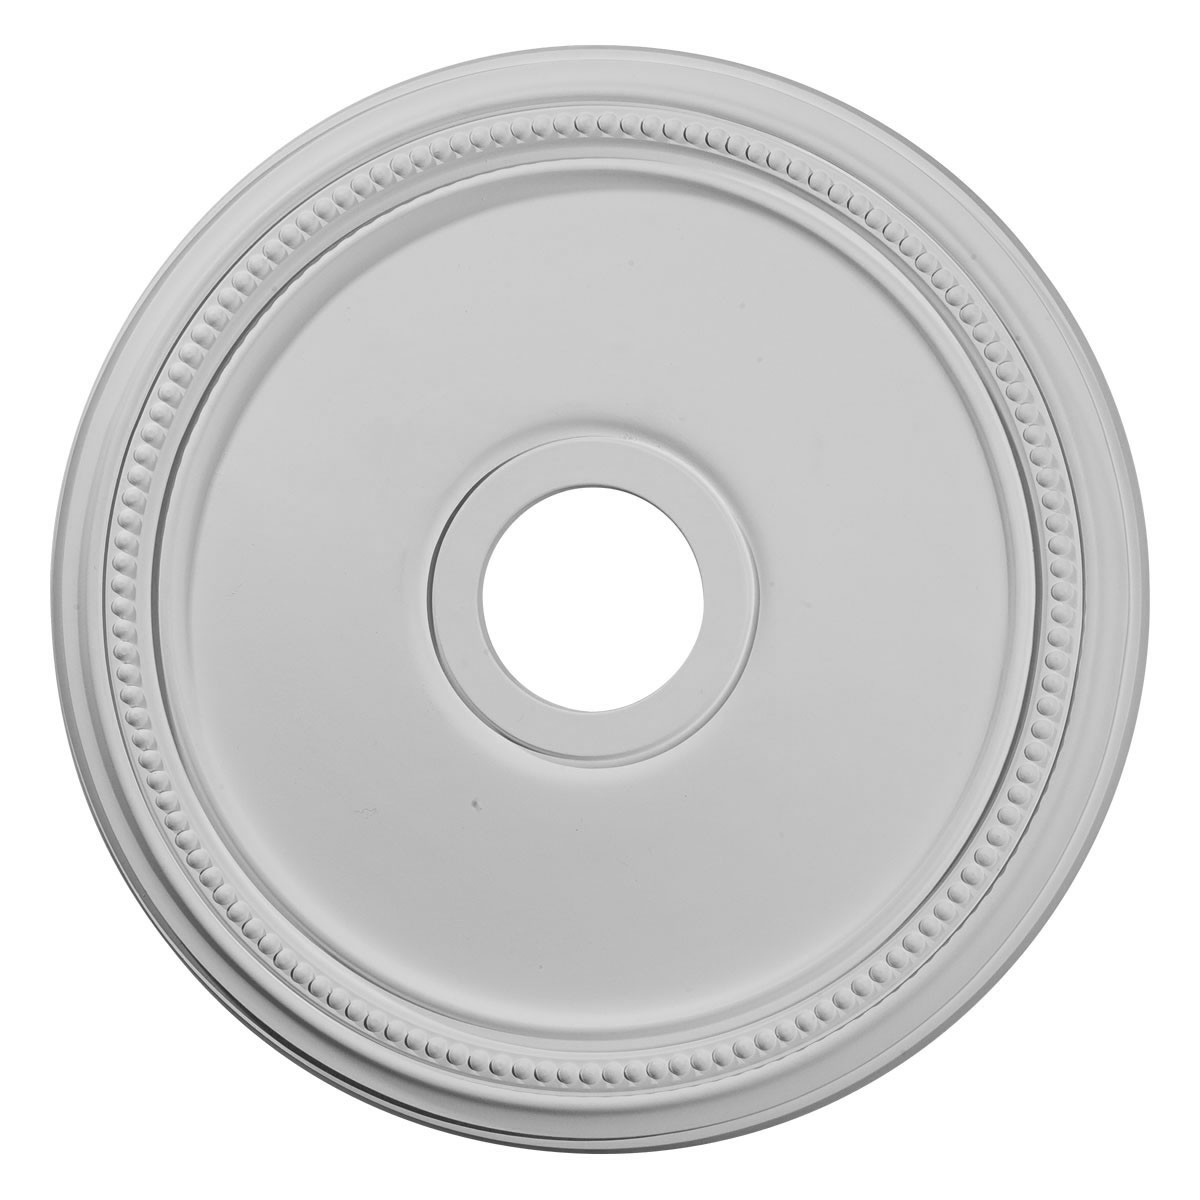 """EM-CM18DI - 18""""OD x 3 5/8""""ID x 1 1/8""""P Diane Ceiling Medallion (Fits Canopies up to 5 3/8"""")"""